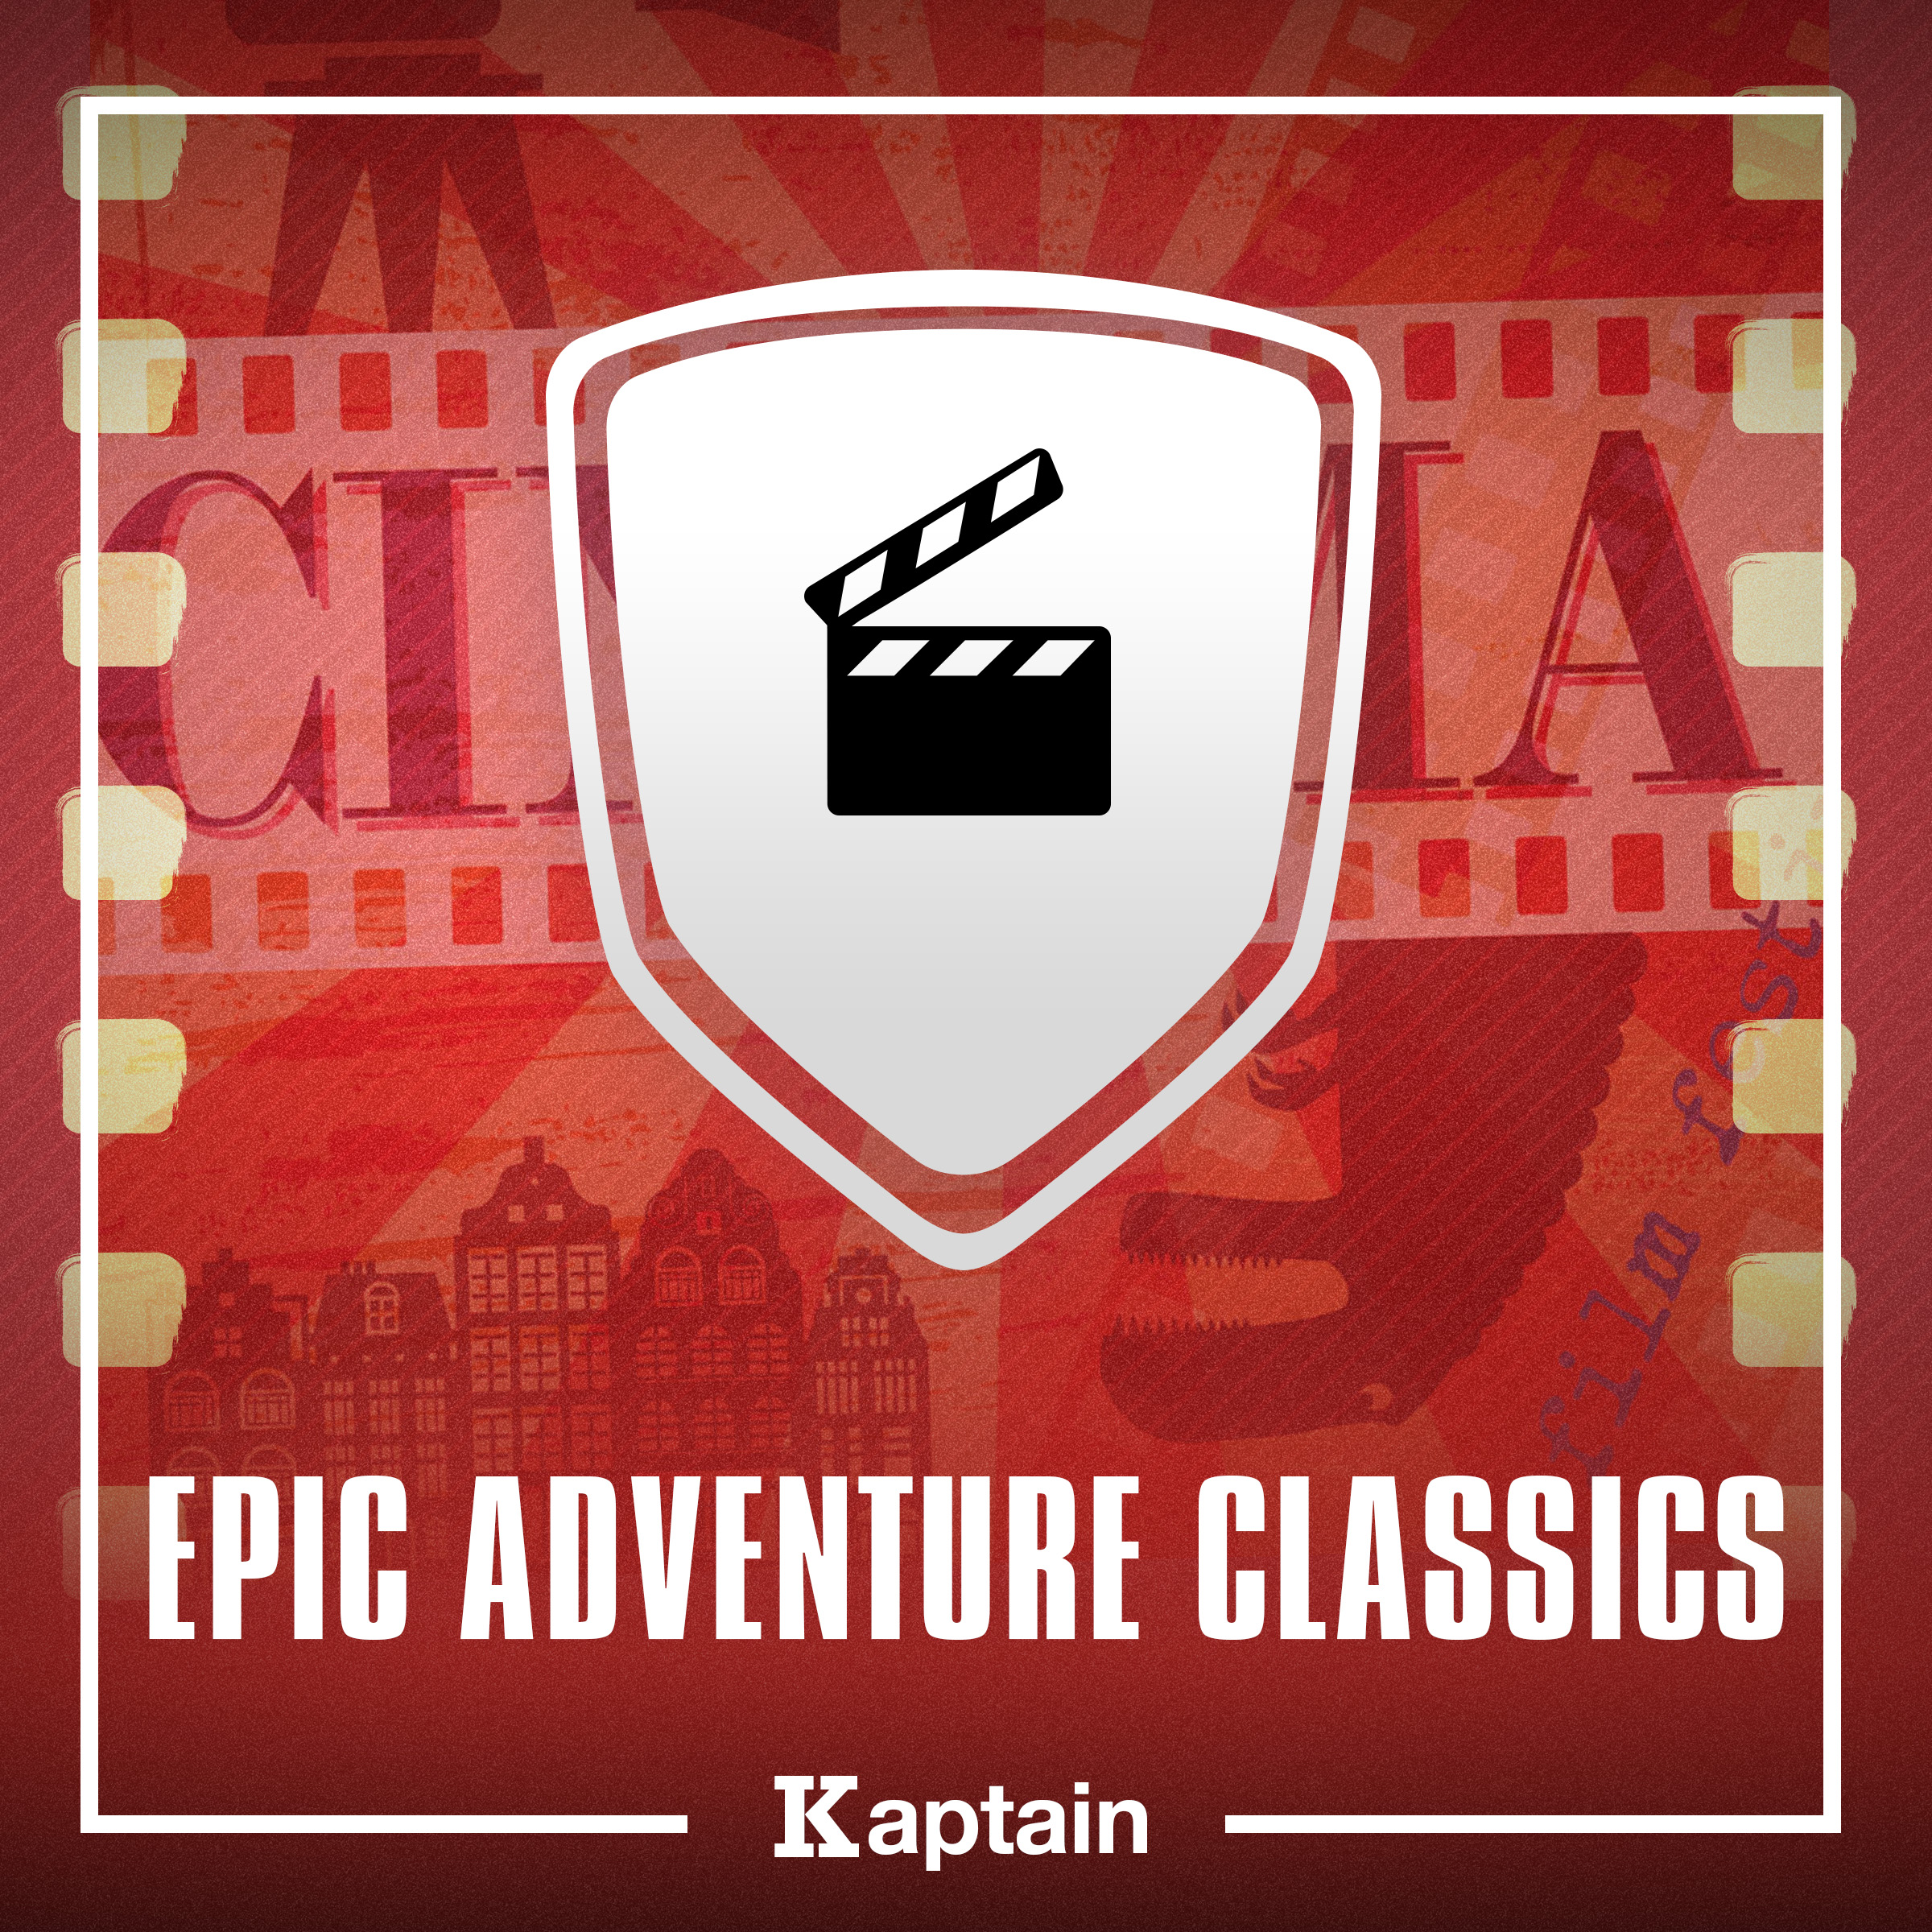 Epic Adventure Classics